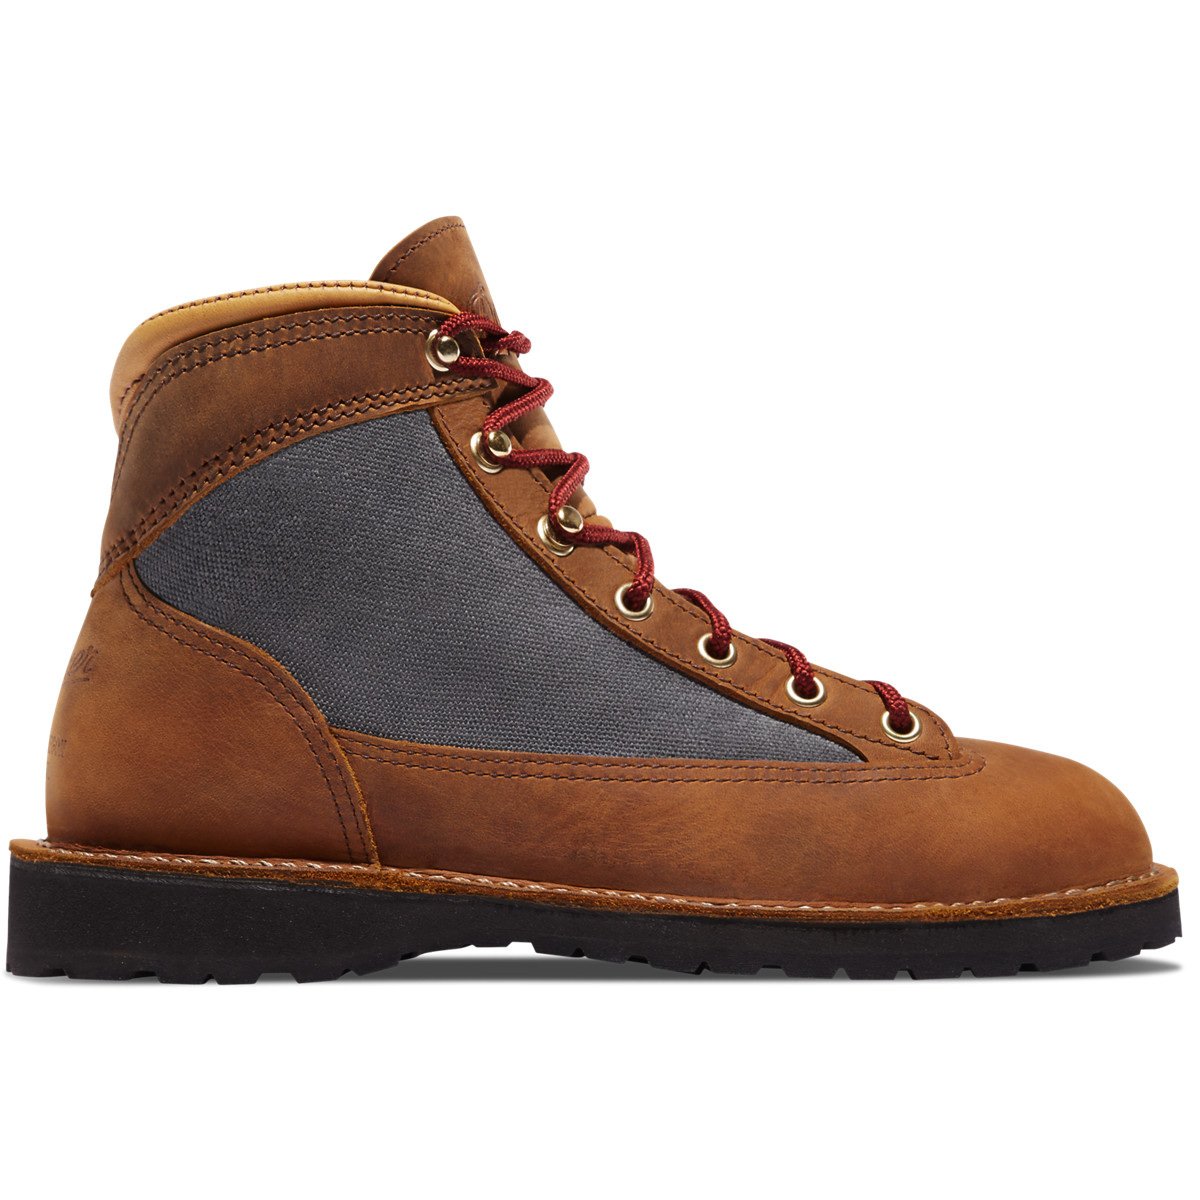 Women's Danner Ridge Tan/Gray